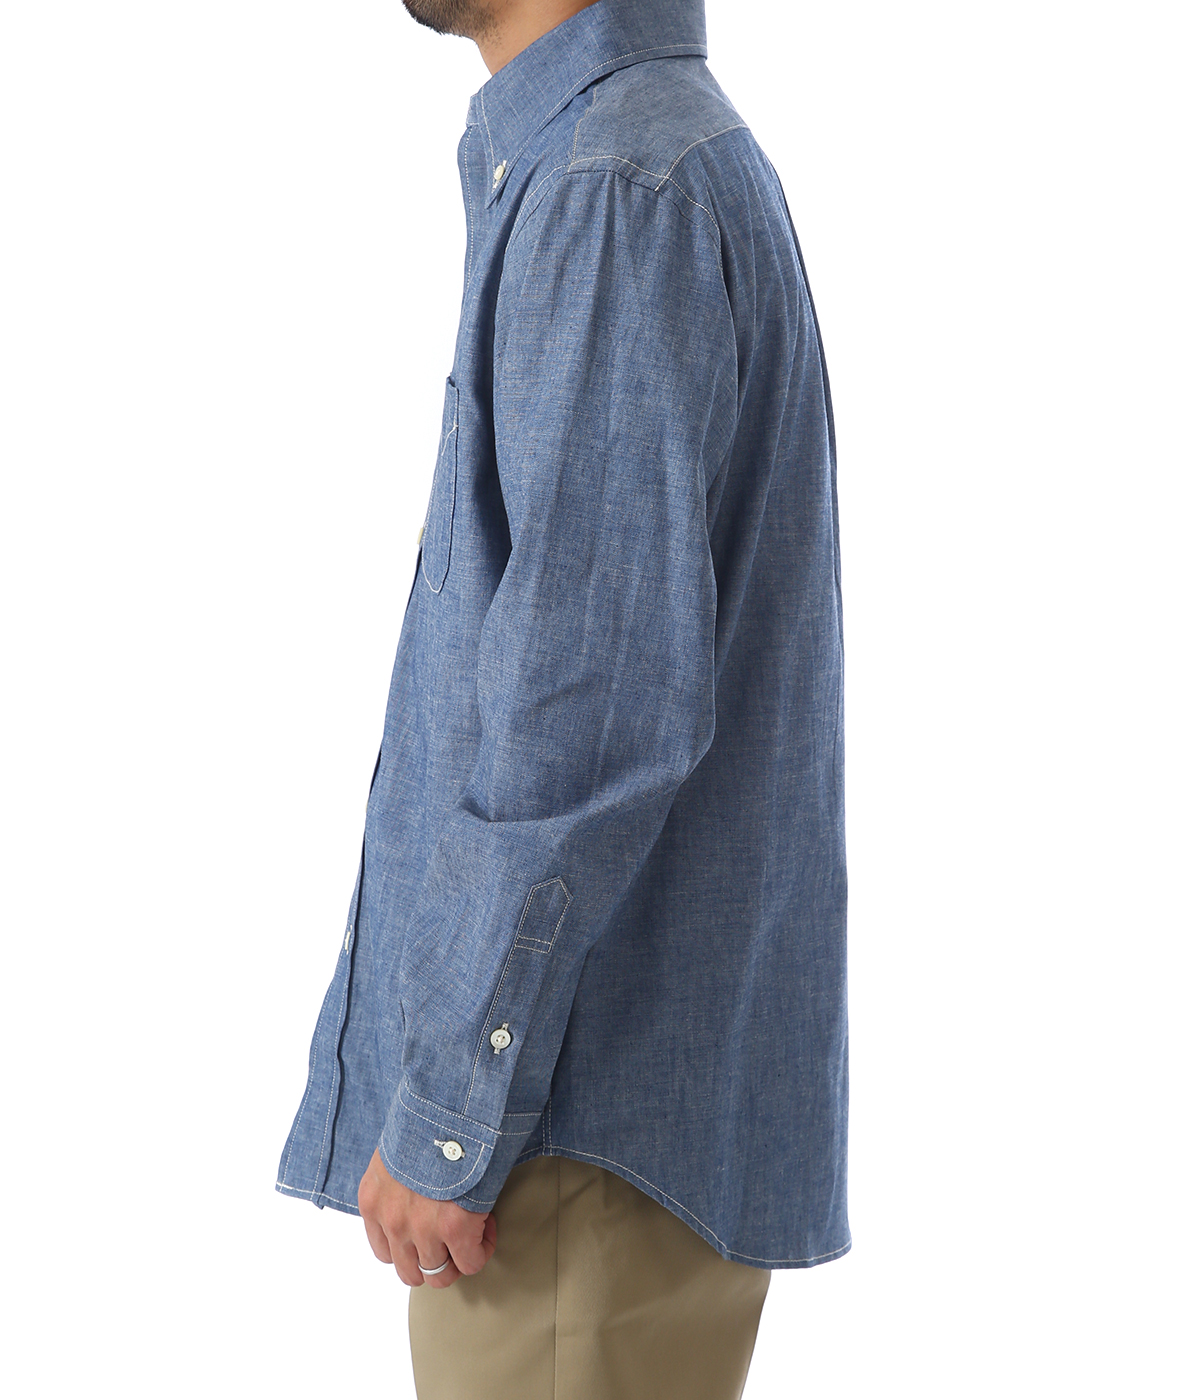 MEN'S BUTTON DOWN SHIRT CHAMBRAY